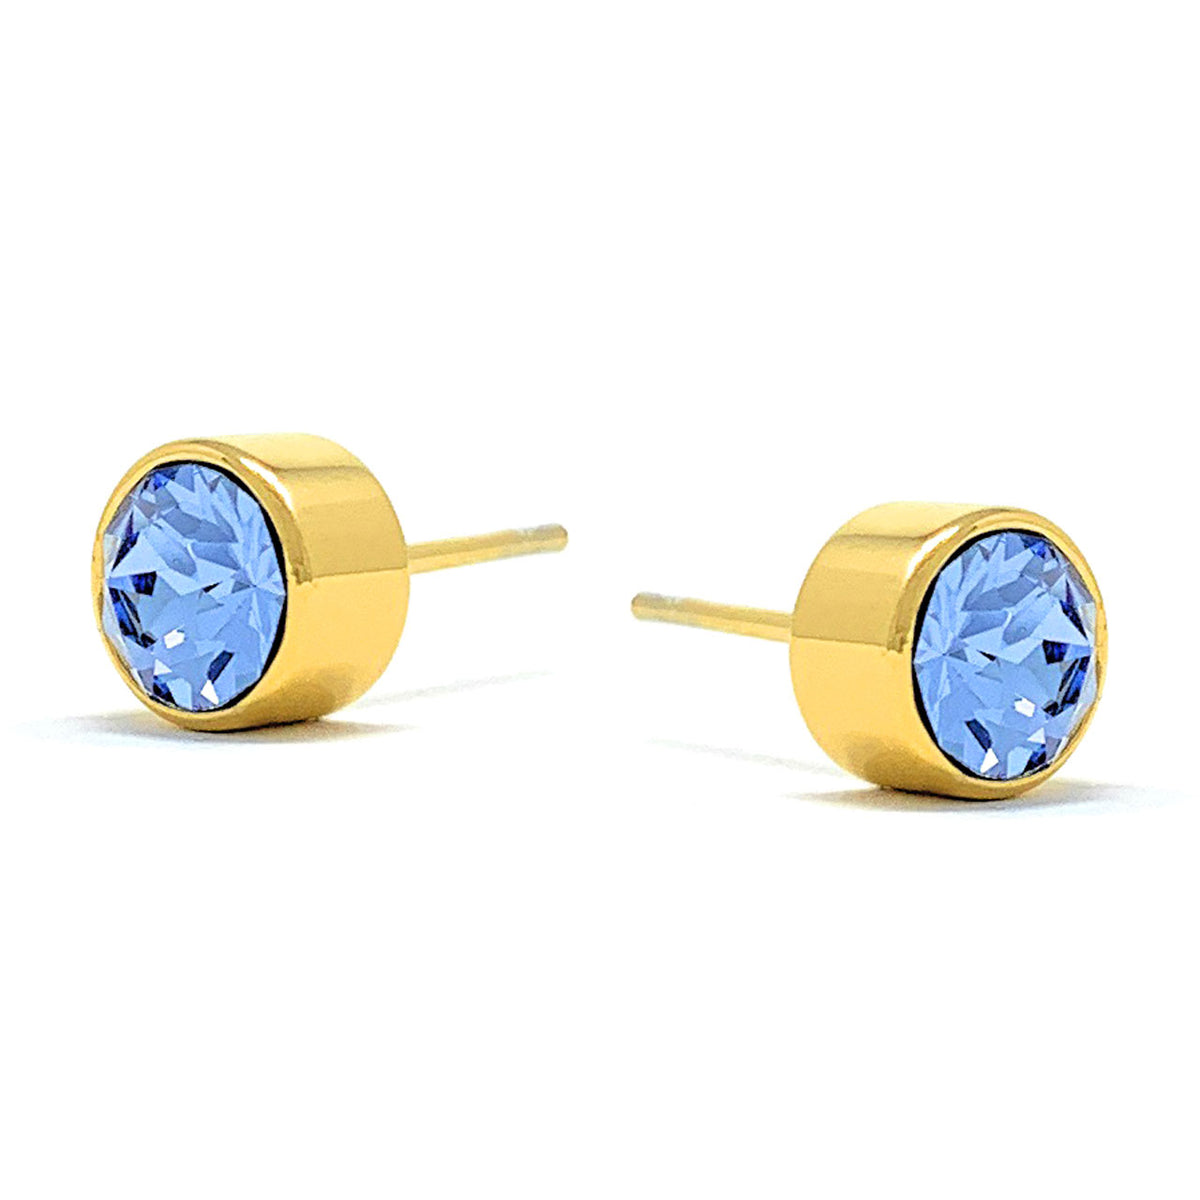 Harley Small Stud Earrings with Blue Light Sapphire Round Crystals from Swarovski Gold Plated - Ed Heart